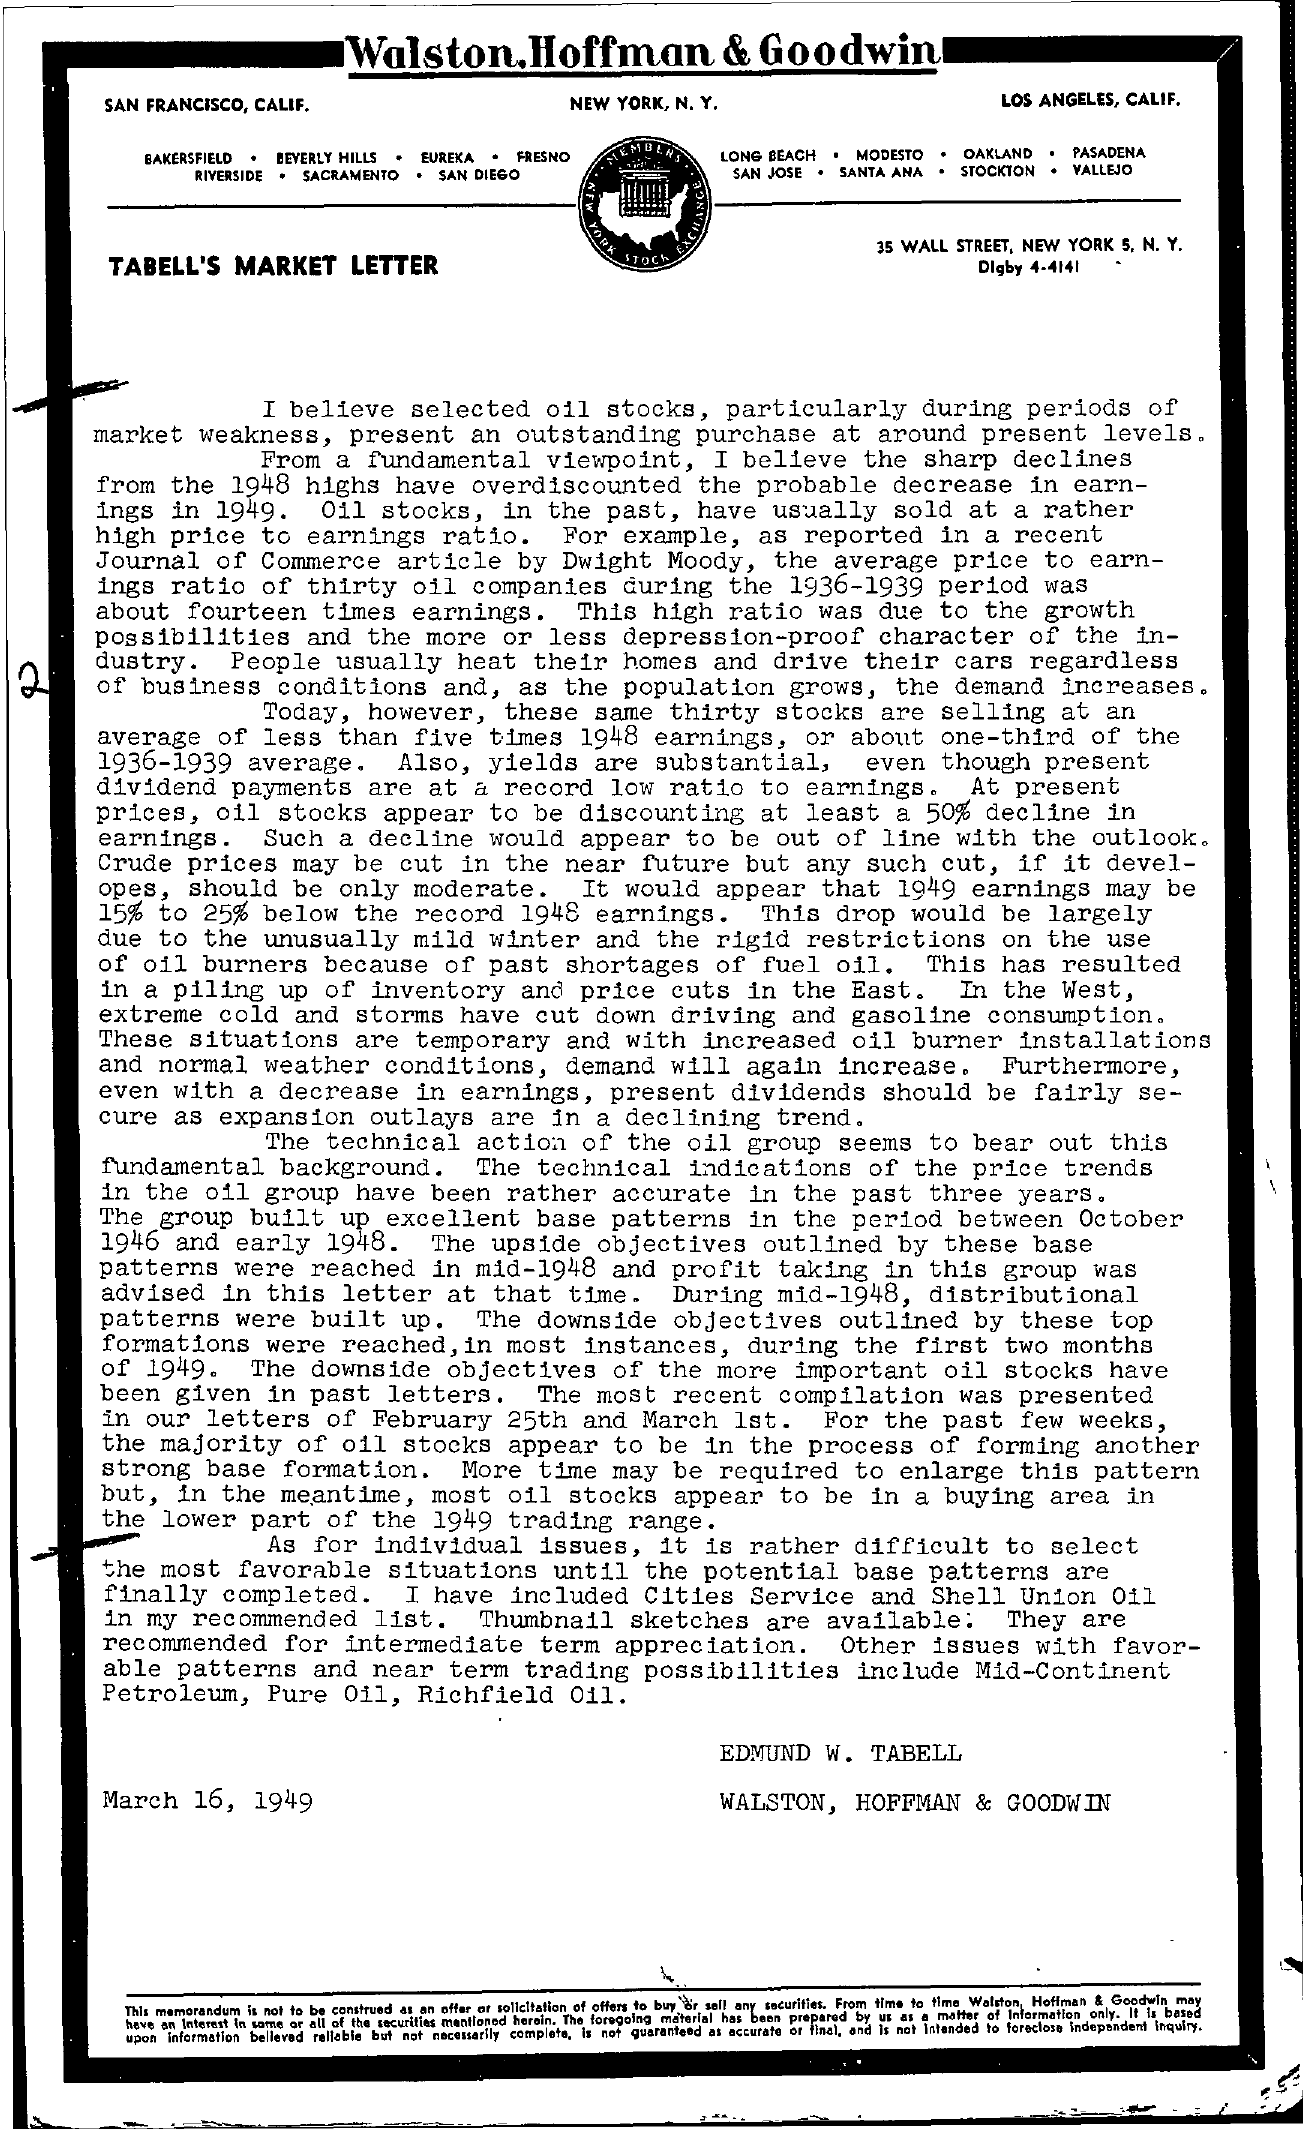 Tabell's Market Letter - March 16, 1949